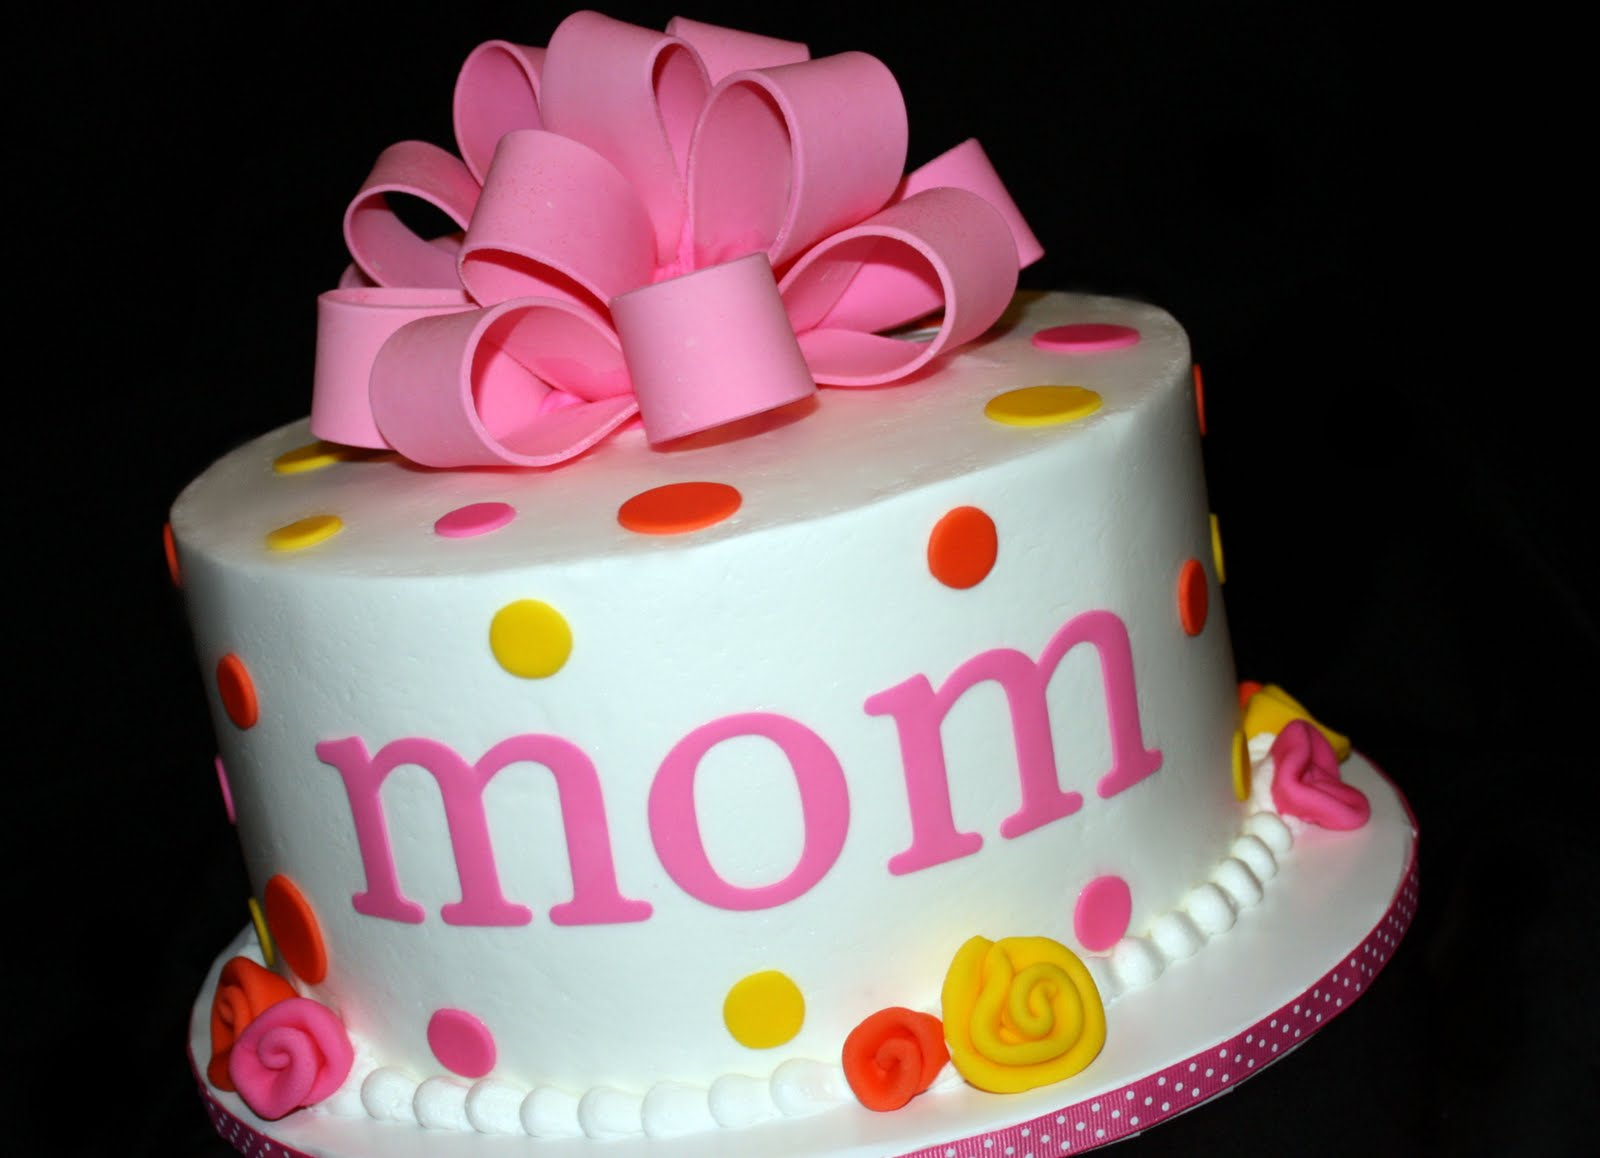 Birthday Cakes Mom Image Inspiration of Cake and Birthday Decoration